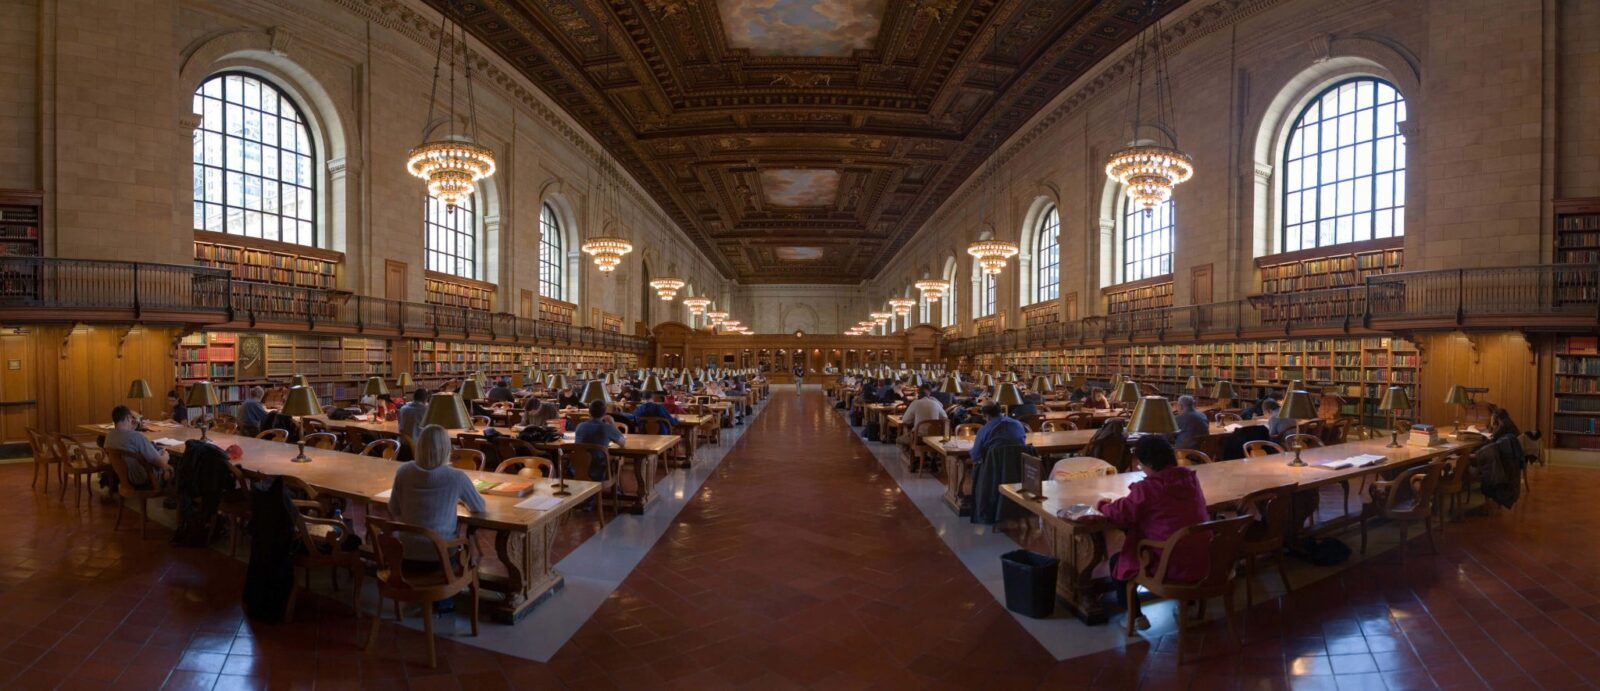 NYC public library inside